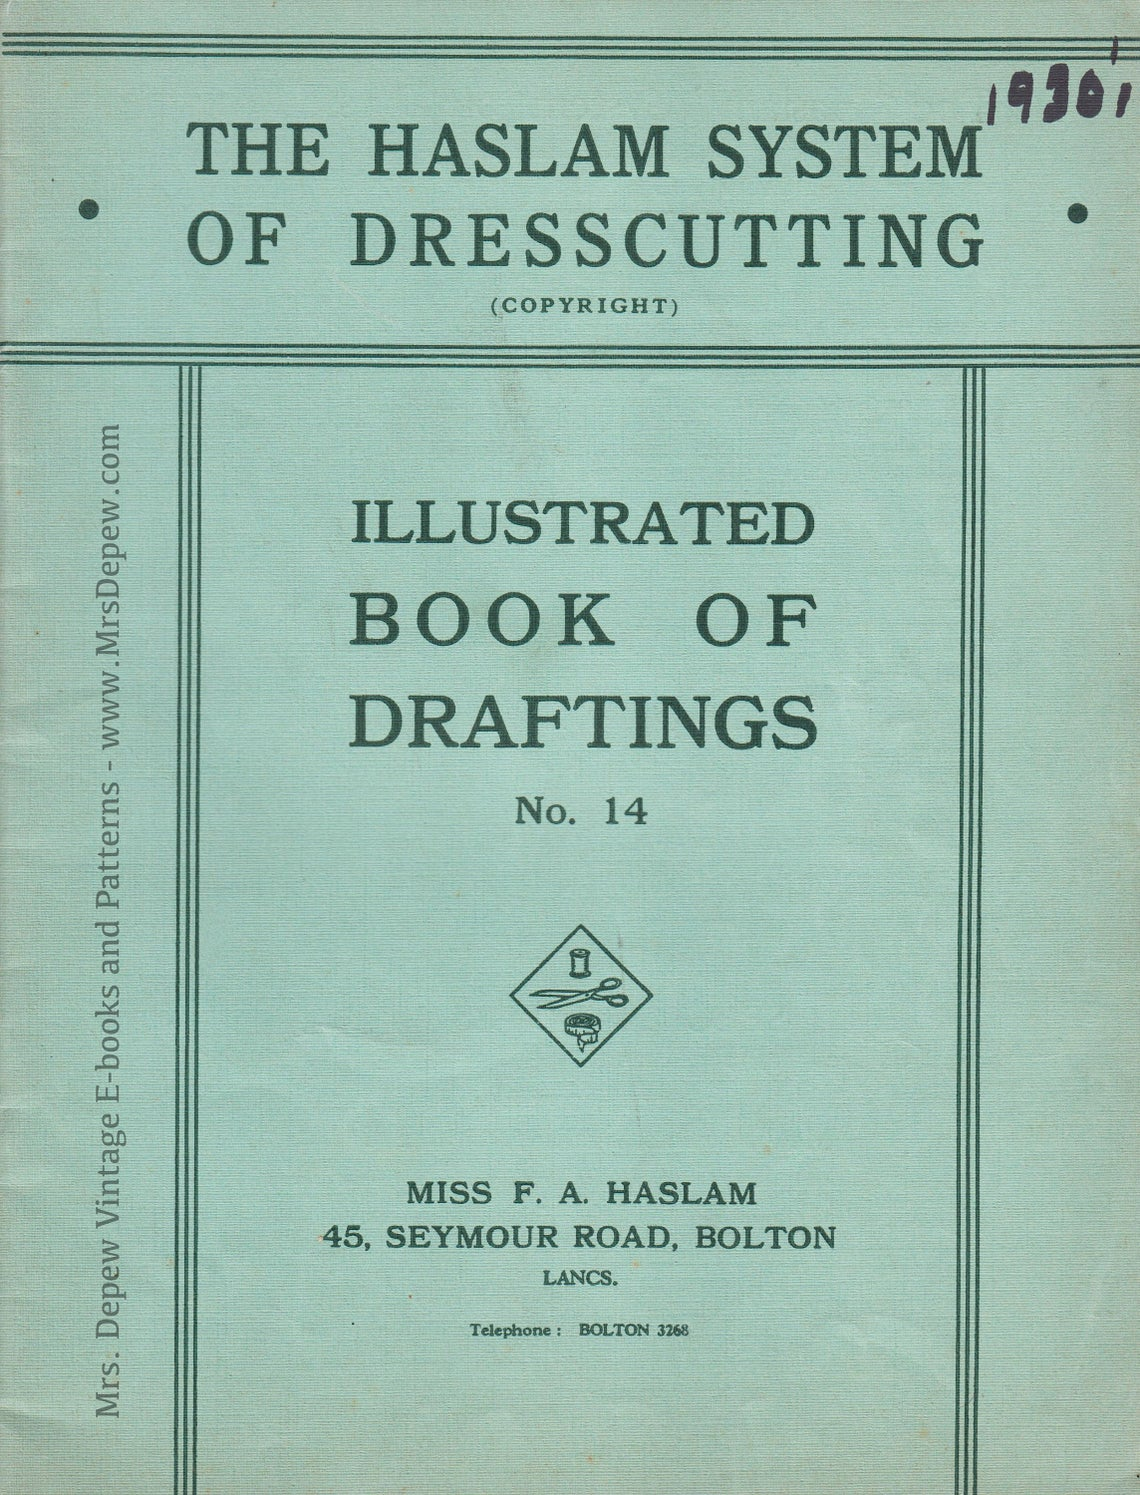 Haslam System of Dresscutting Book of Draftings No. 14